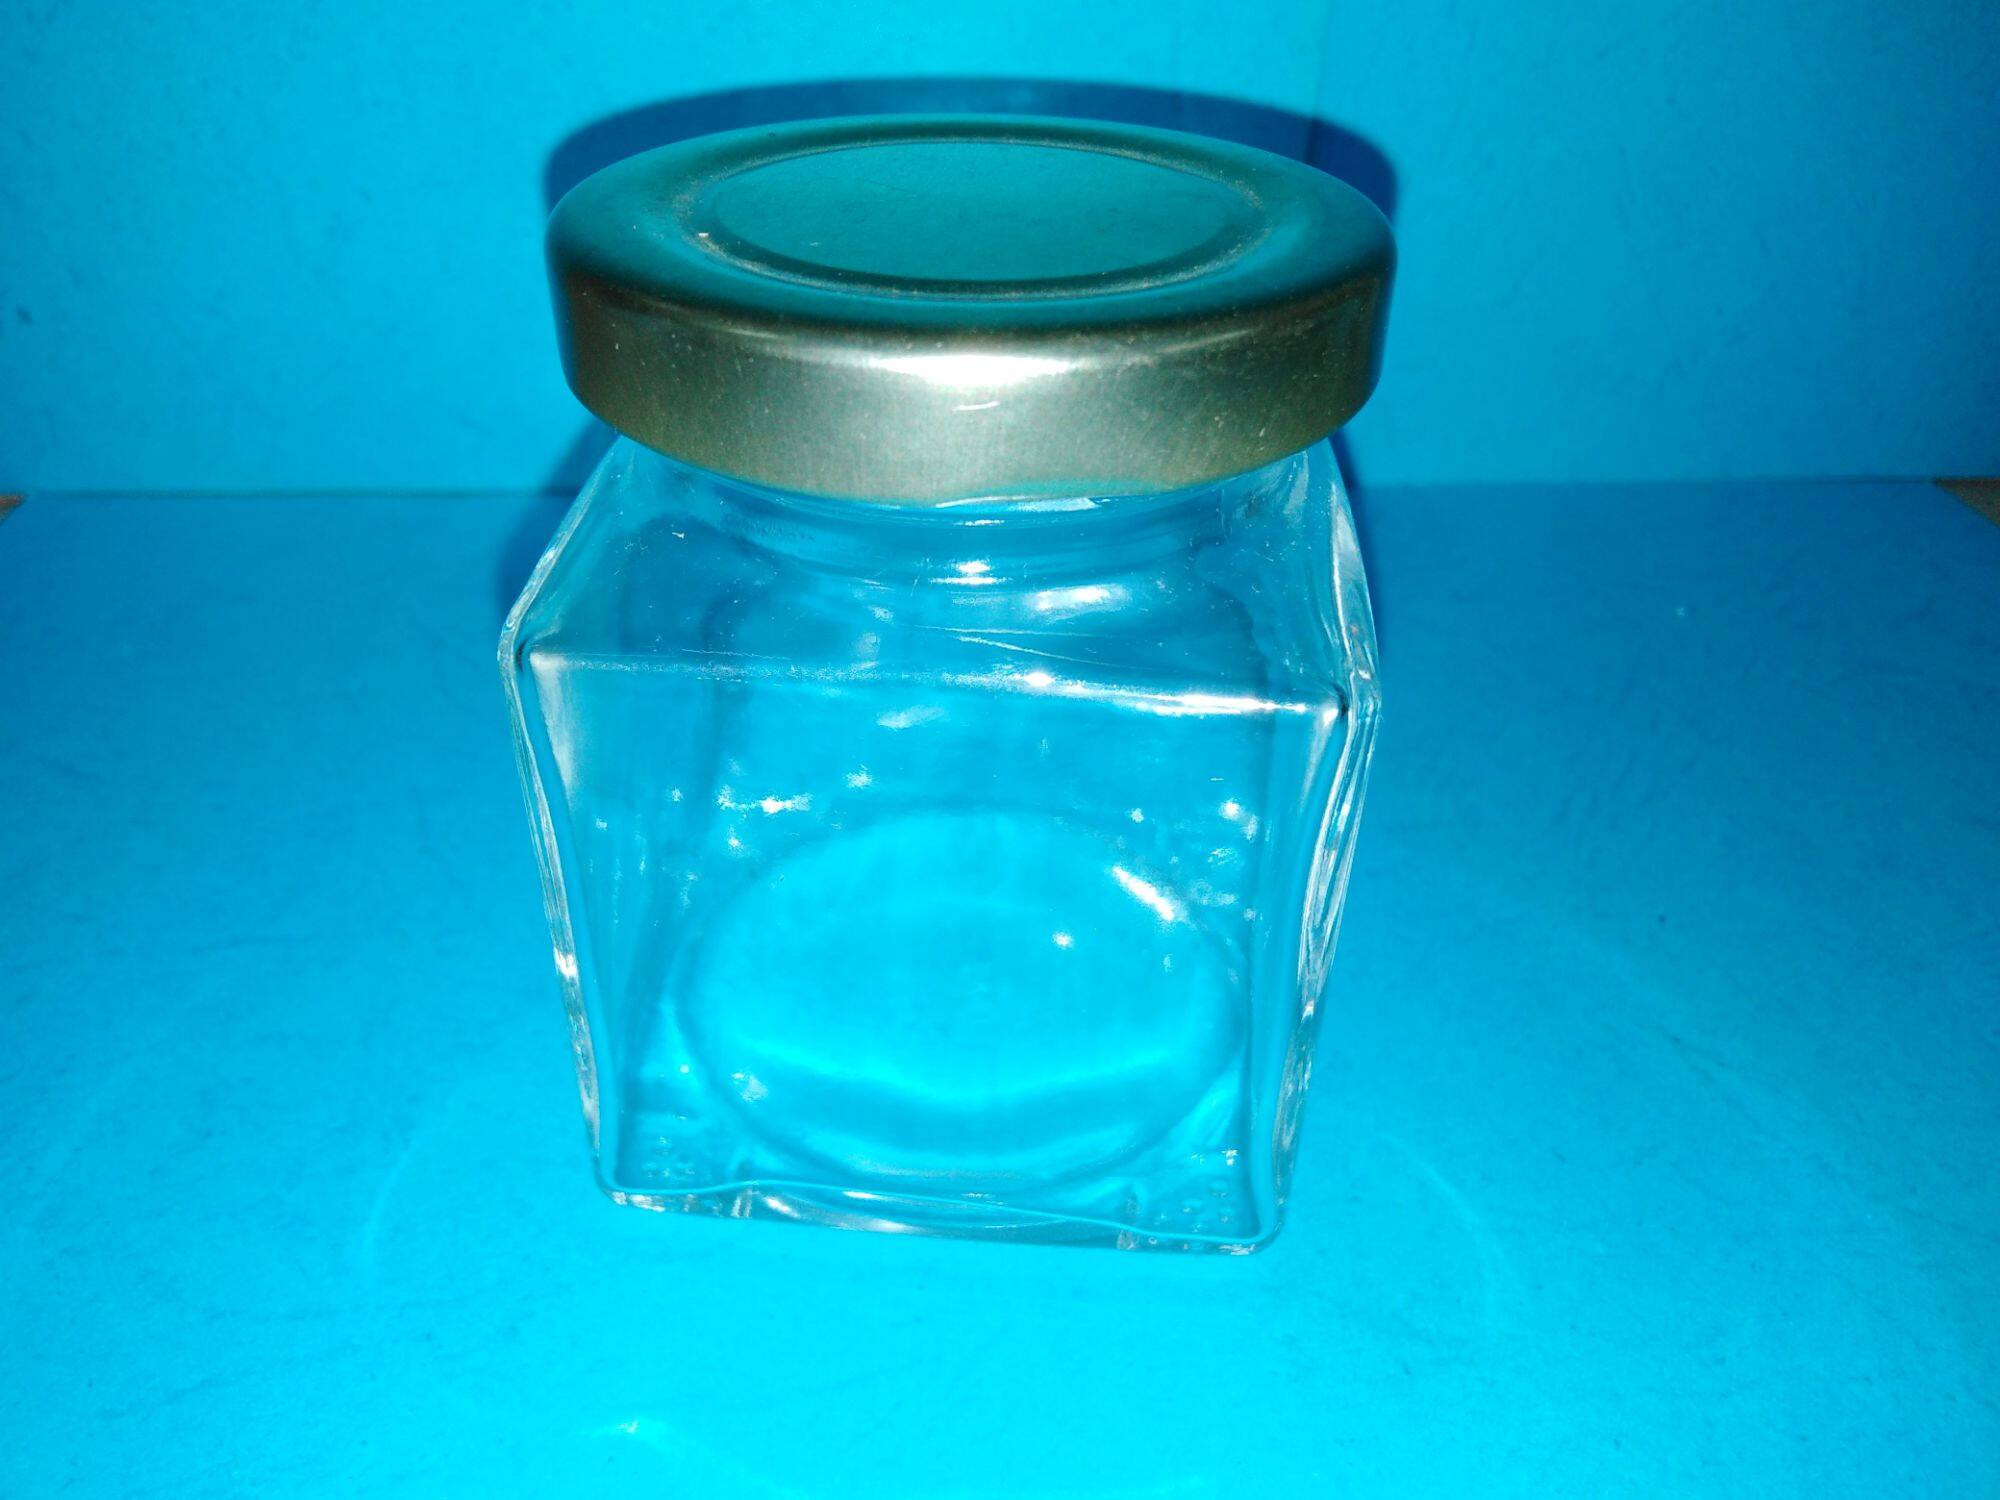 14pc of 120ml square glass jar with golden metal cap